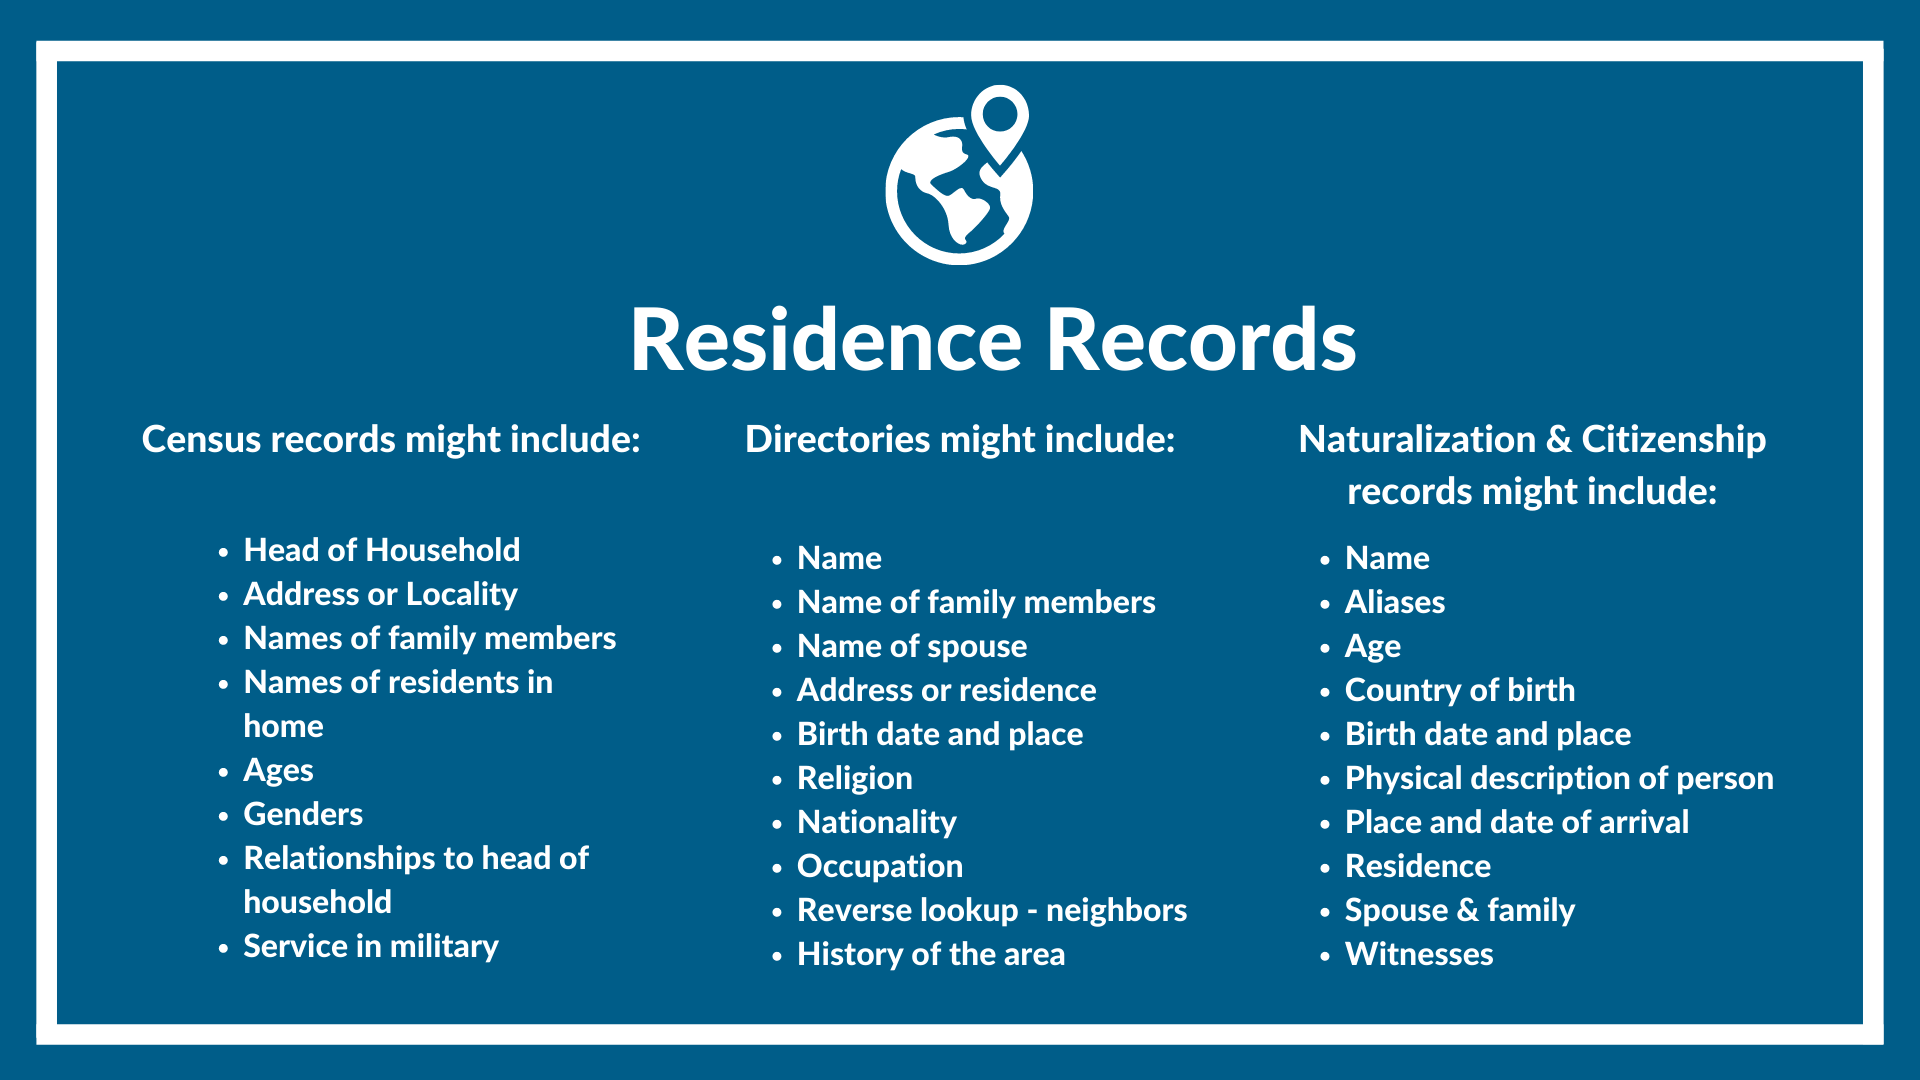 Residence records and what they might include